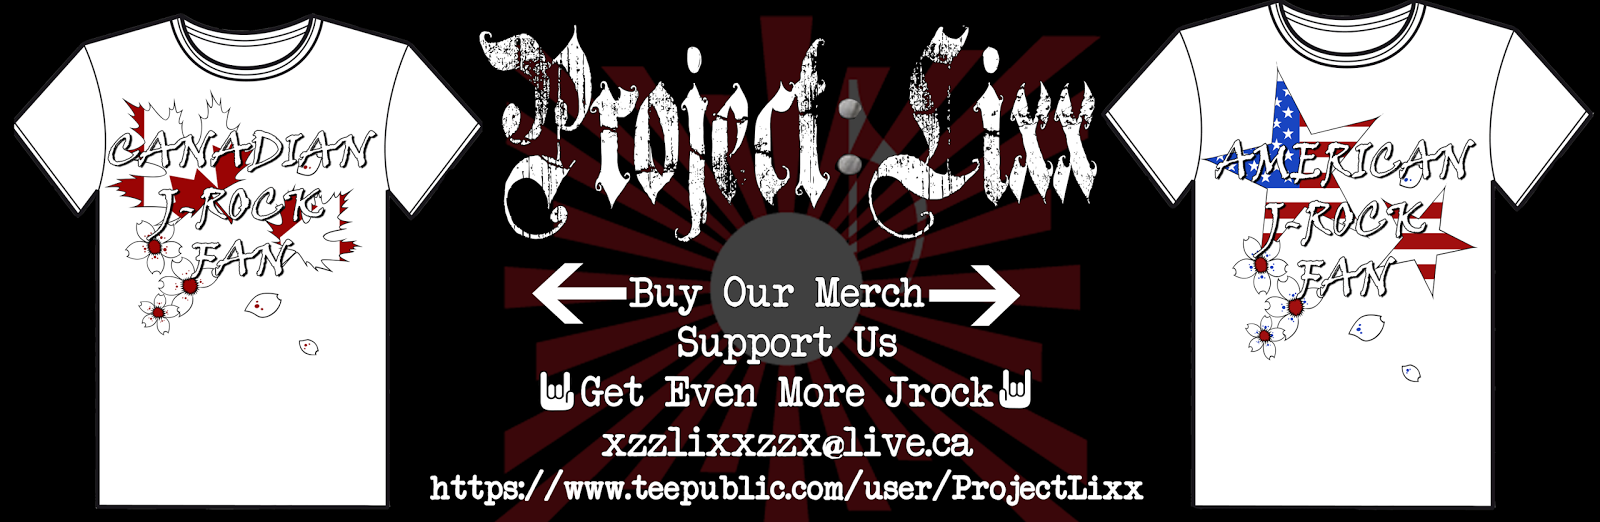 Support Us, Buy Our Merch, Get Even More J-Rock!